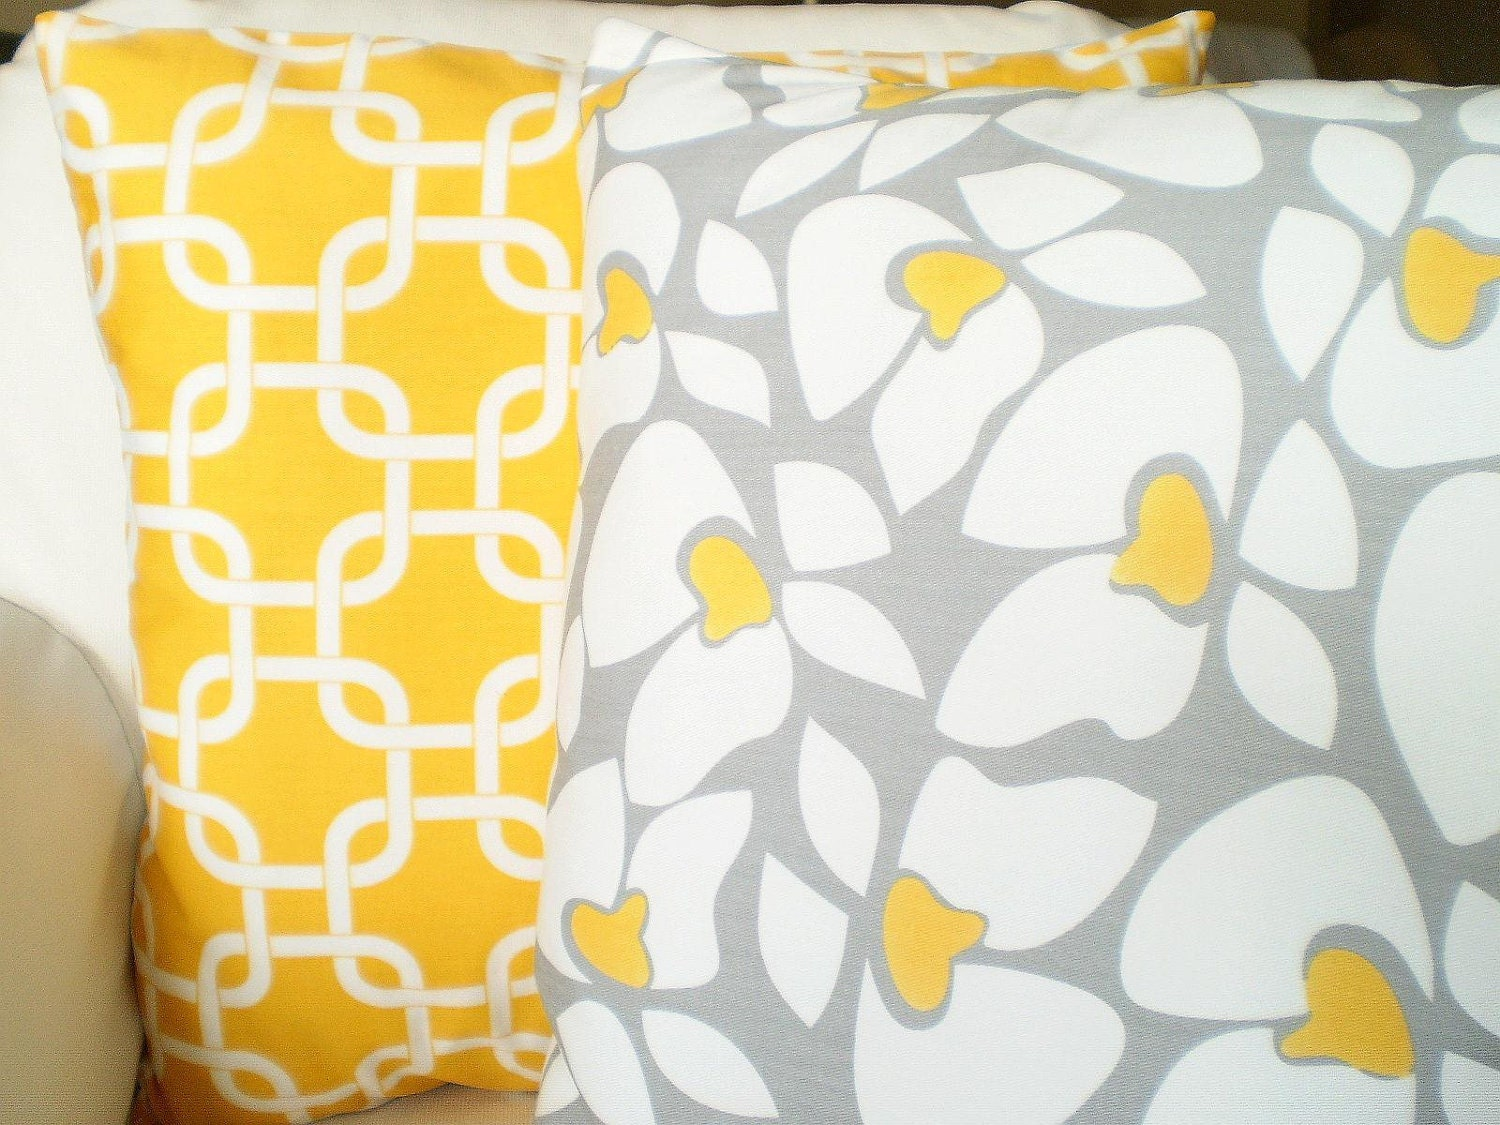 Throw Pillows Groupon : Yellow Gray Decorative Throw Pillow Covers by FabricJunkie1640